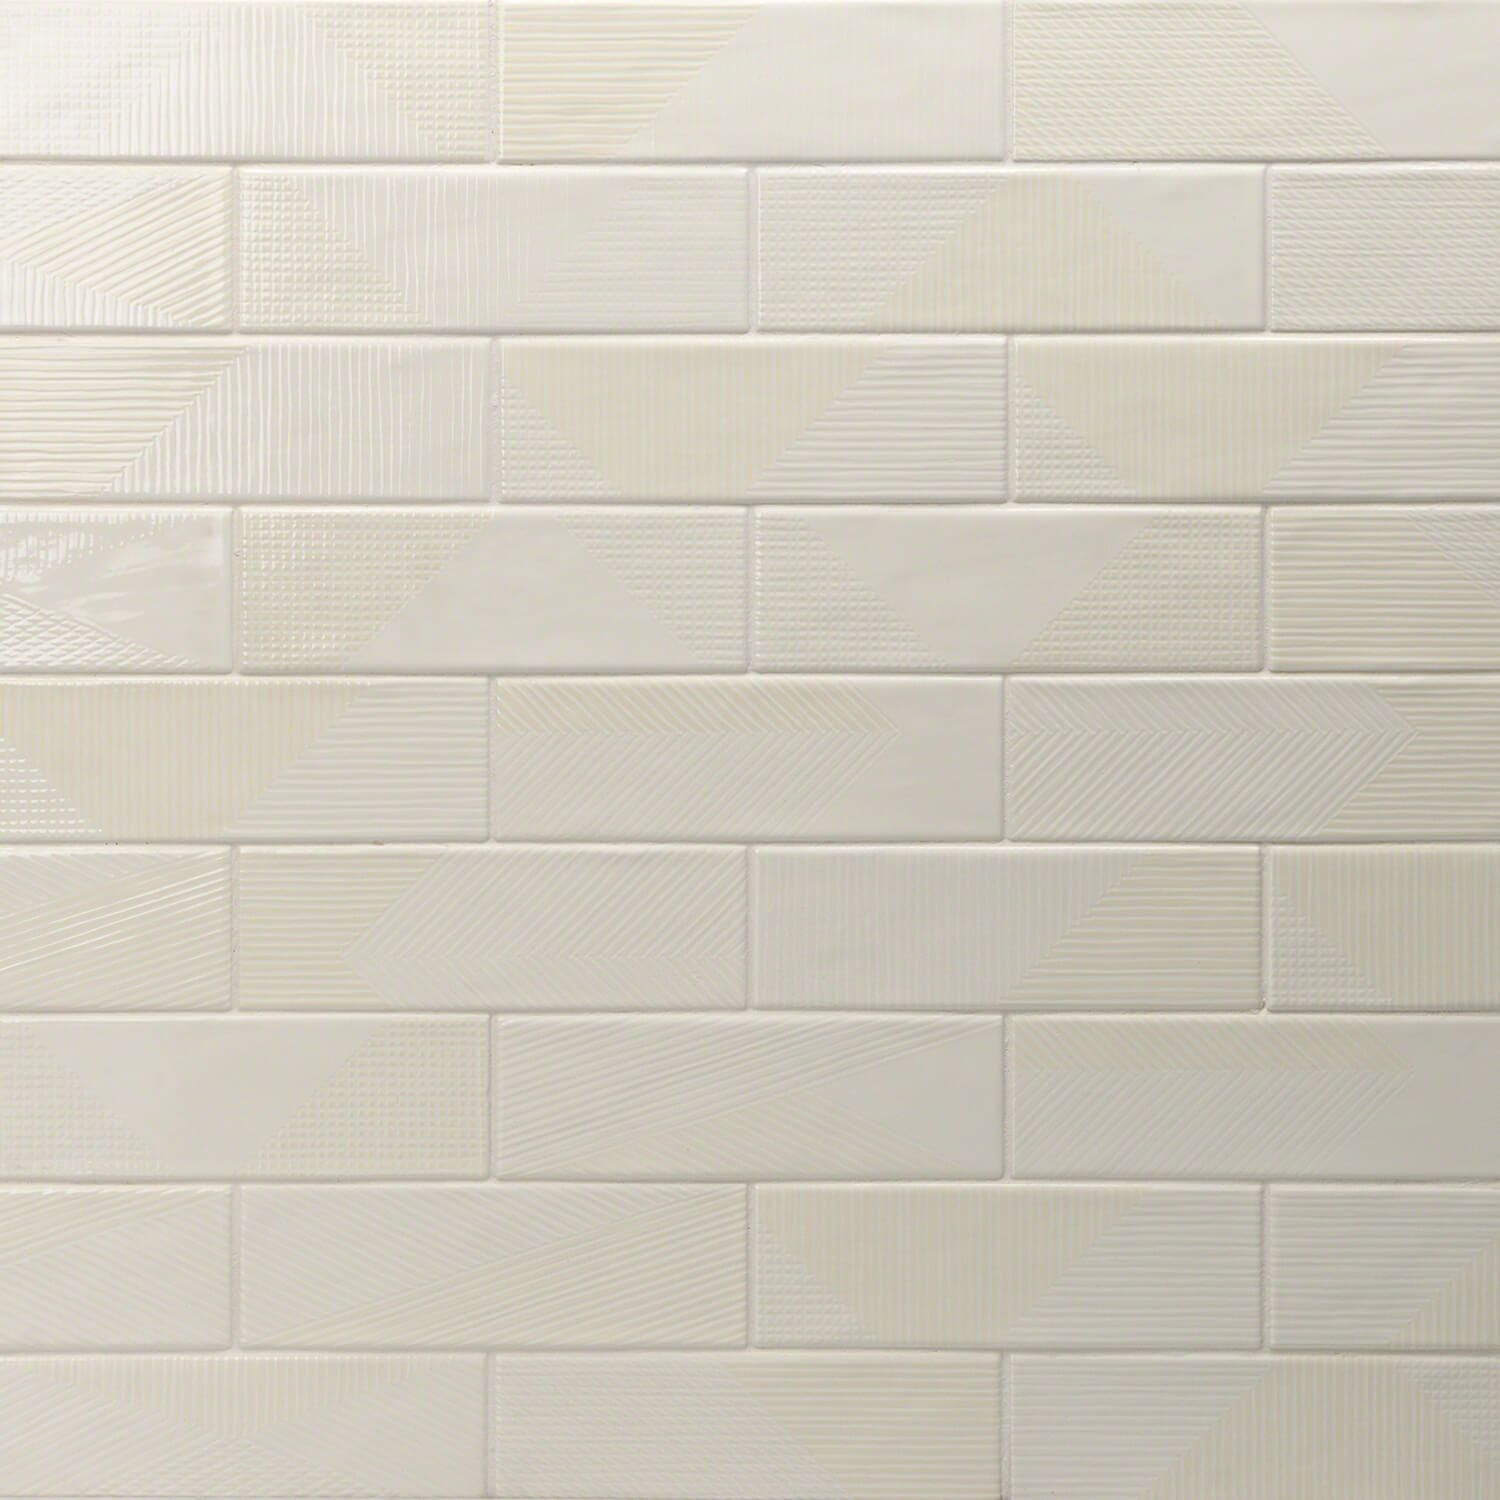 Enigma Ivory 2x8 Polished Ceramic Tile